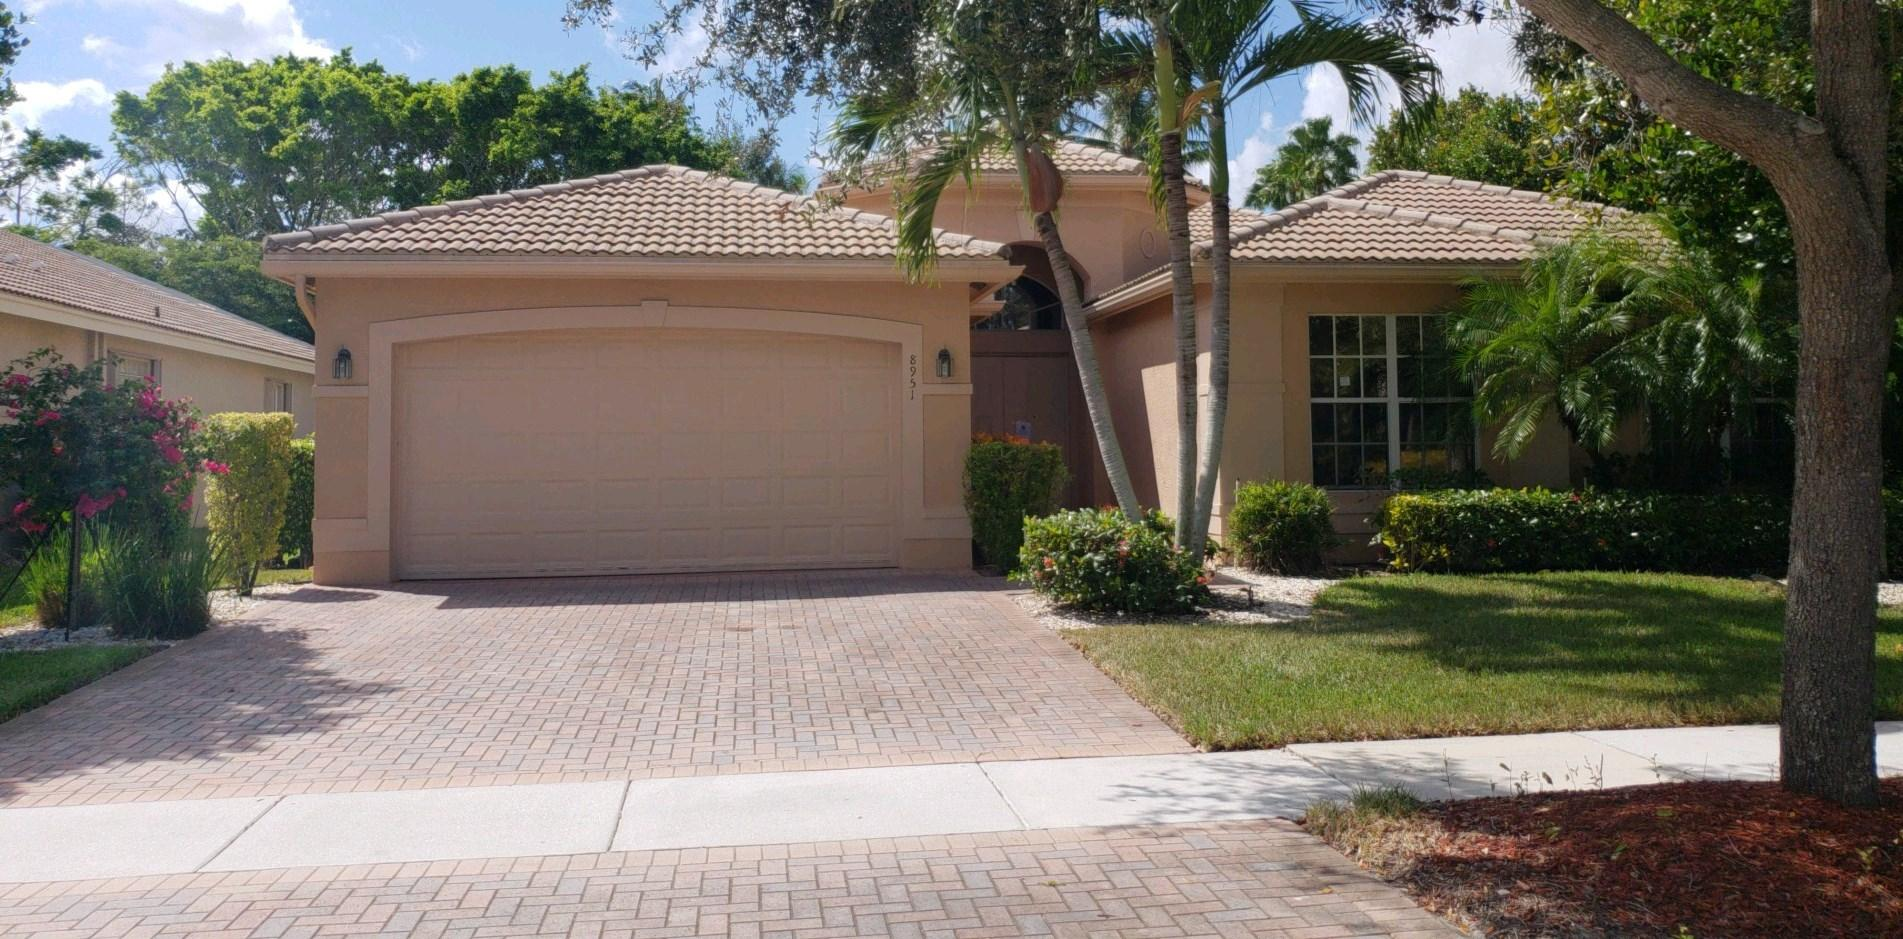 VALENCIA SHORES 1 home 8951 Majorca Bay Drive Lake Worth FL 33467